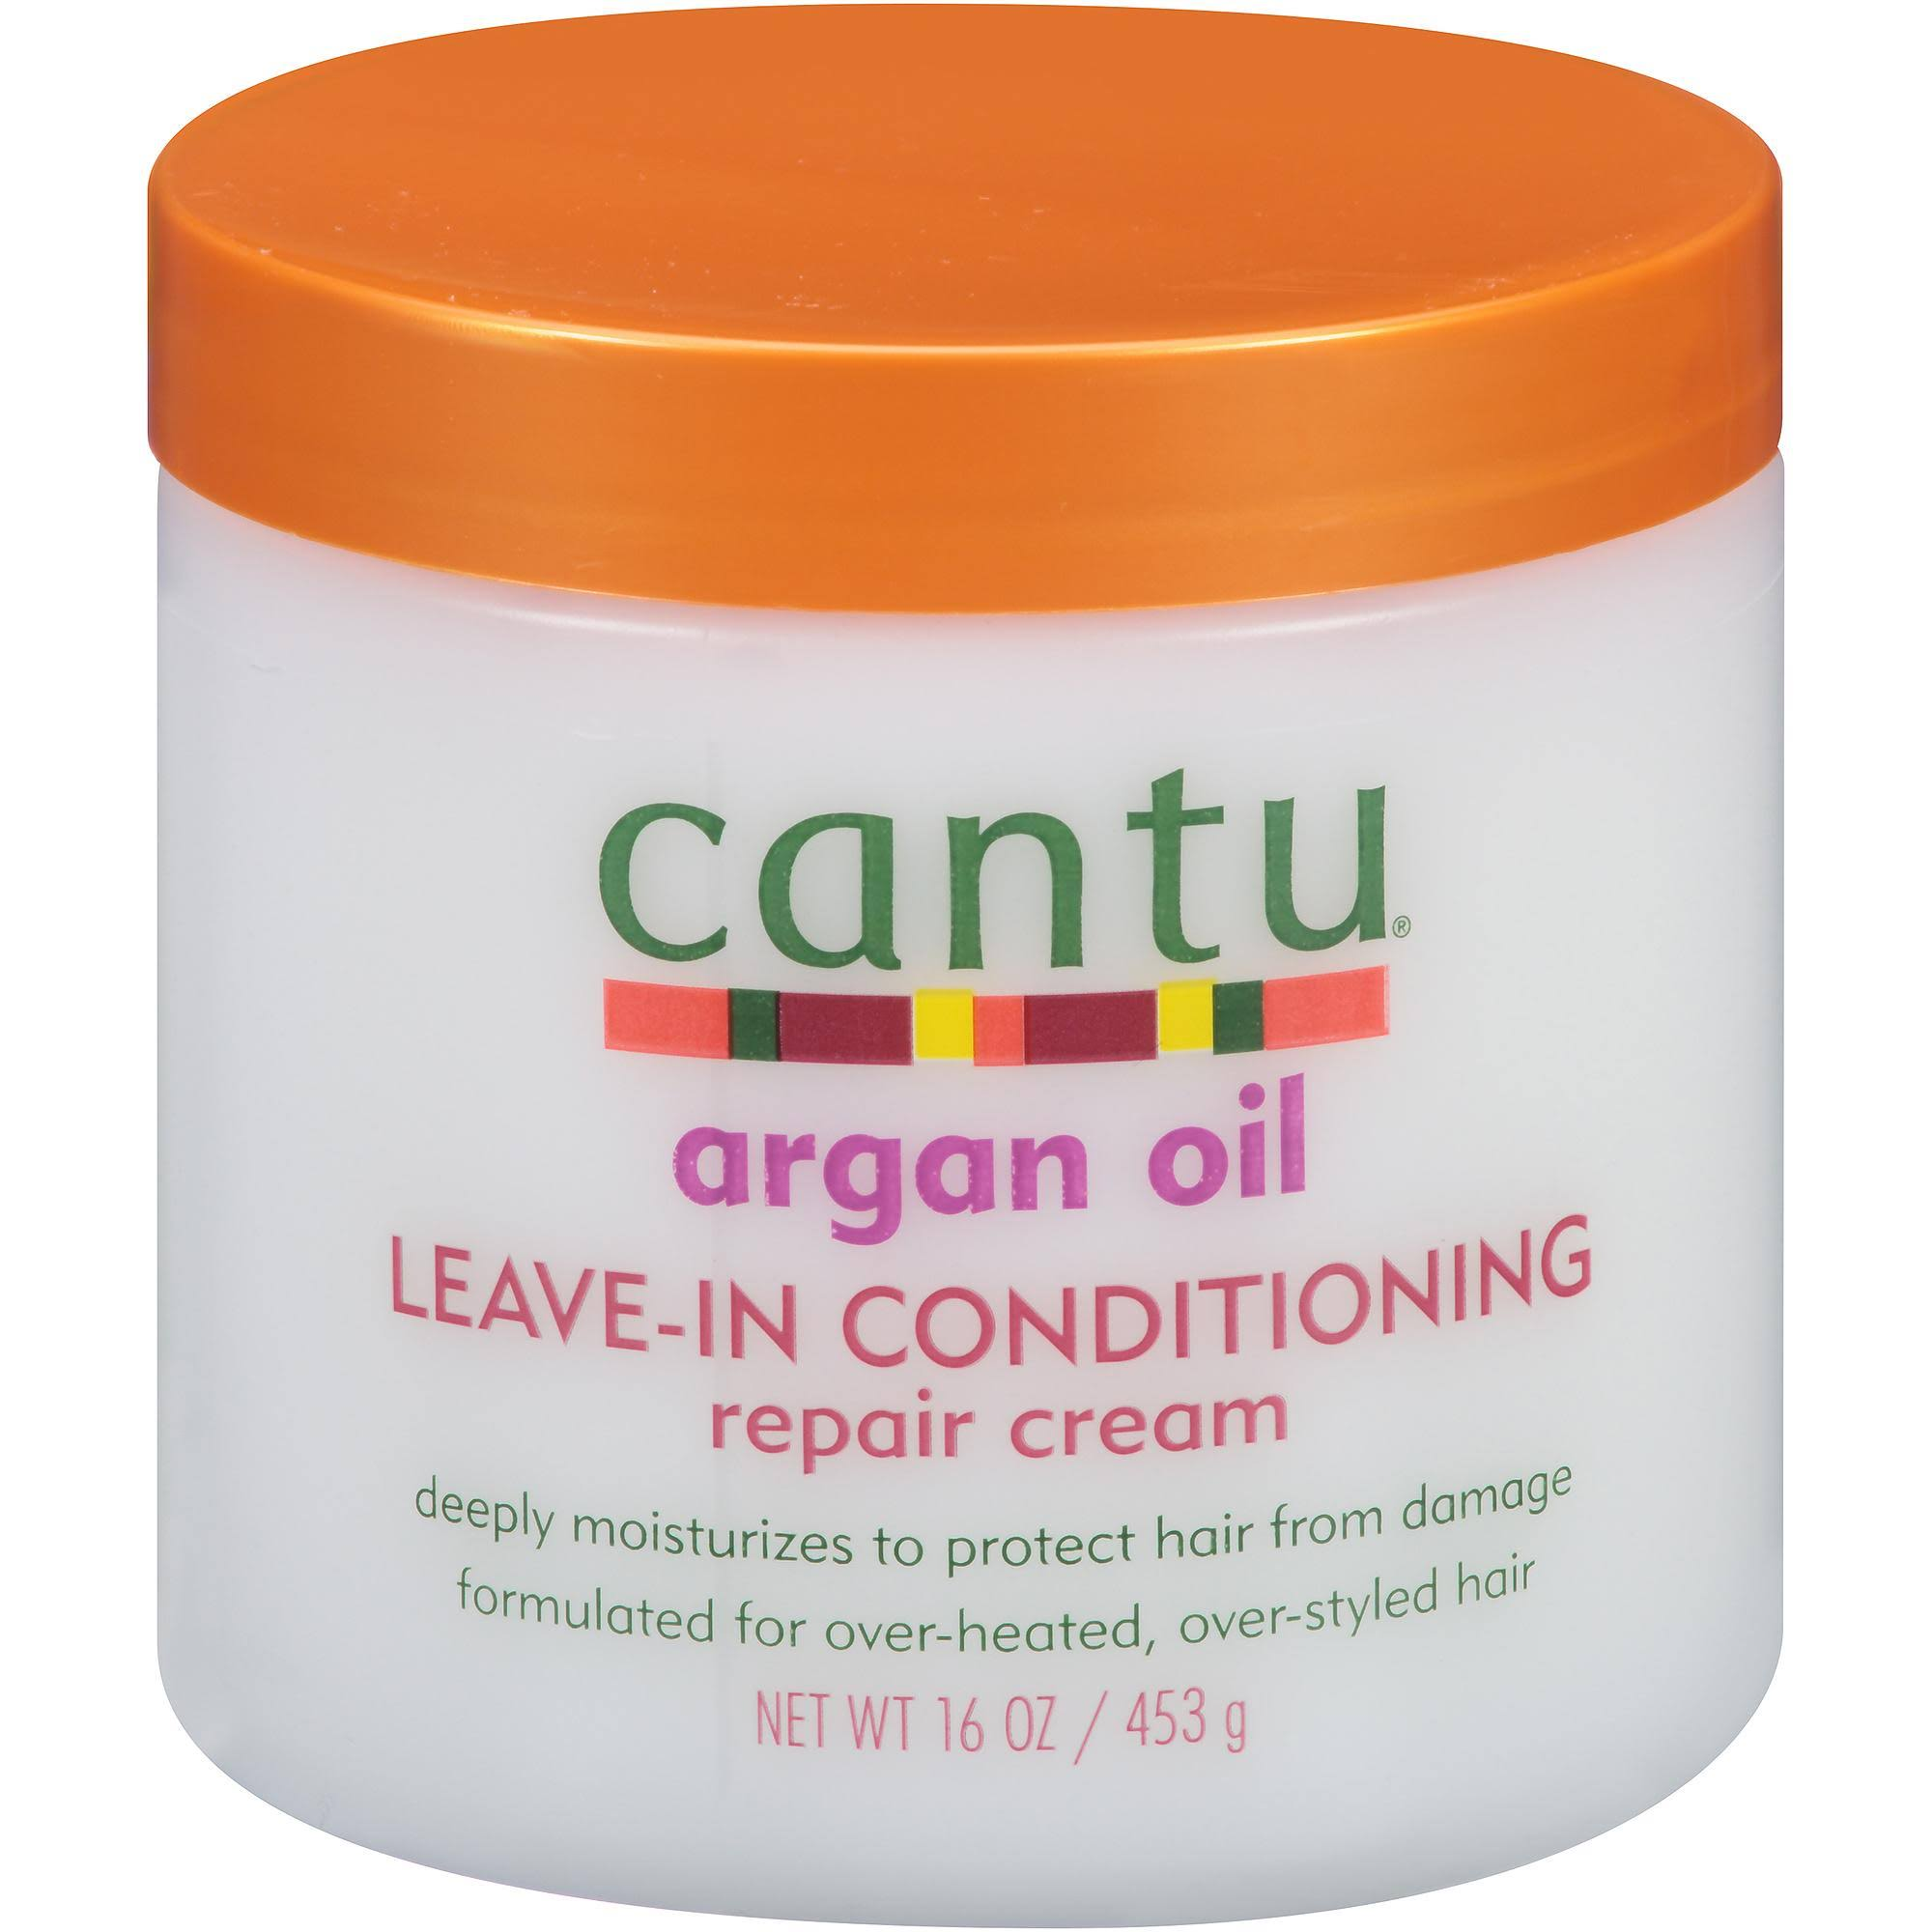 Cantu Argan Oil Leave-In Conditioner Repair Cream - 16oz